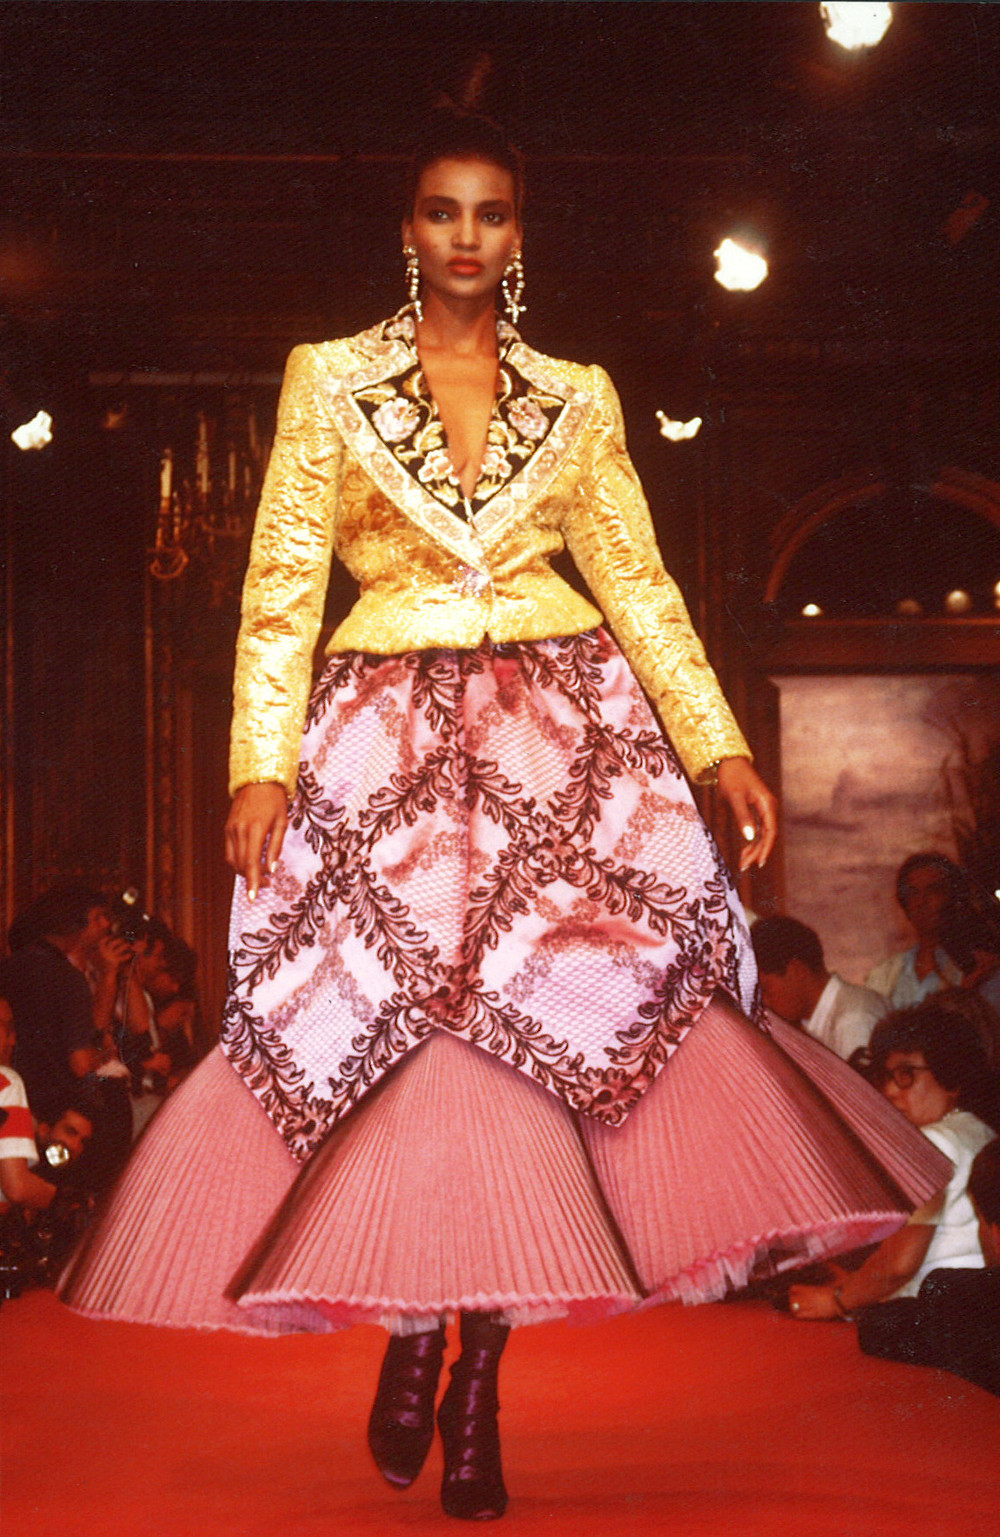 Model wearing Christian Lacroix - 1987 autumn/winter collection